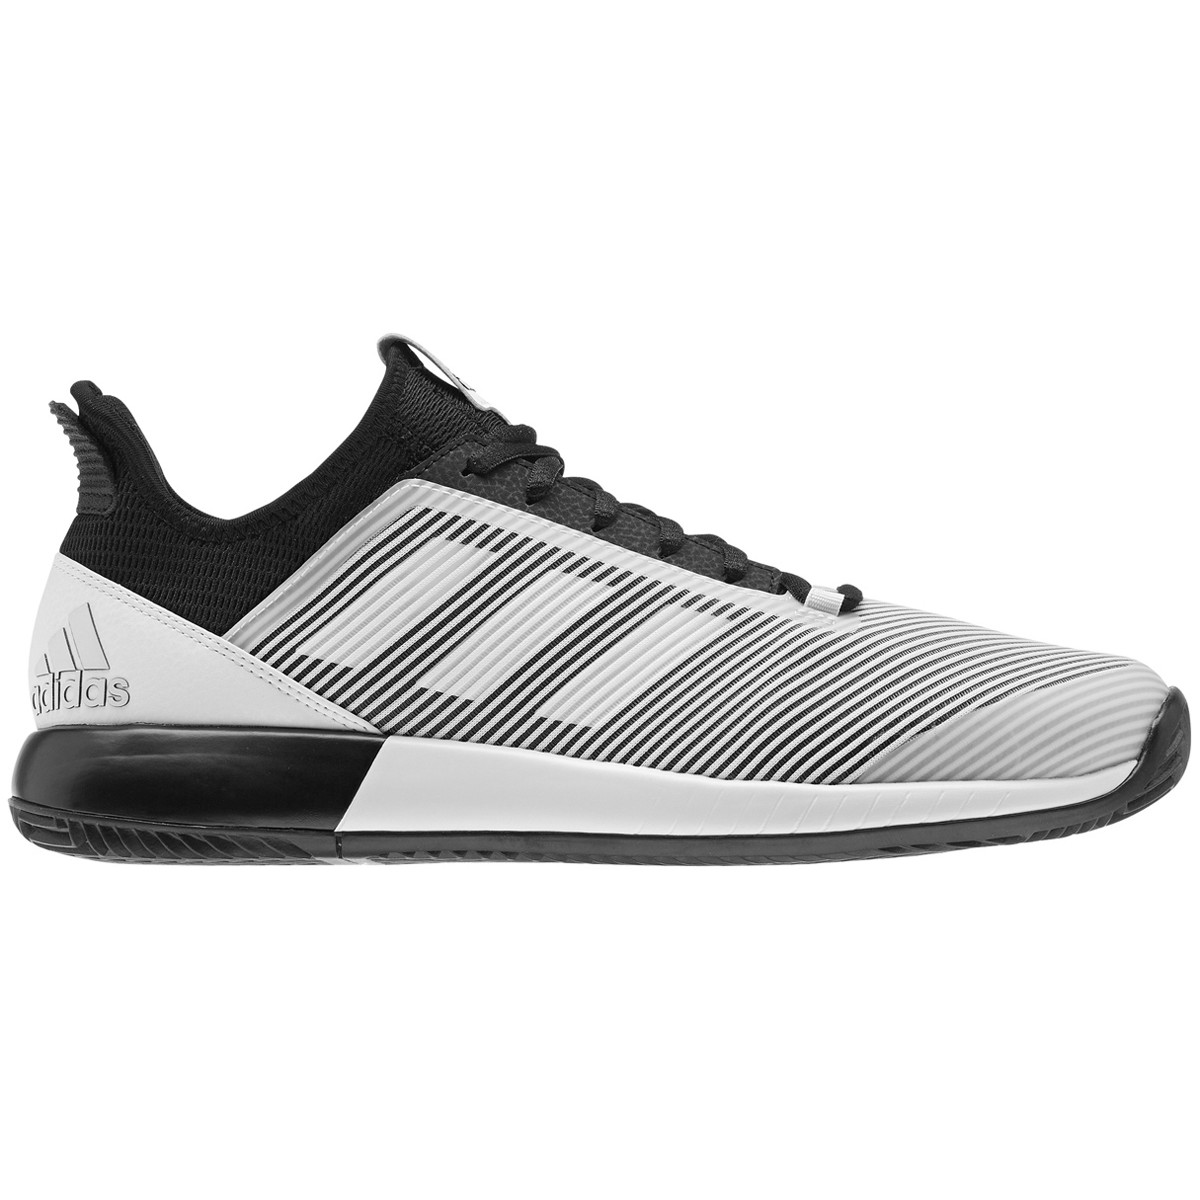 ADIDAS 2 SHOES ADIDAS BOUNCE DEFIANT COURT CLAY Men's NnXO08Pkw